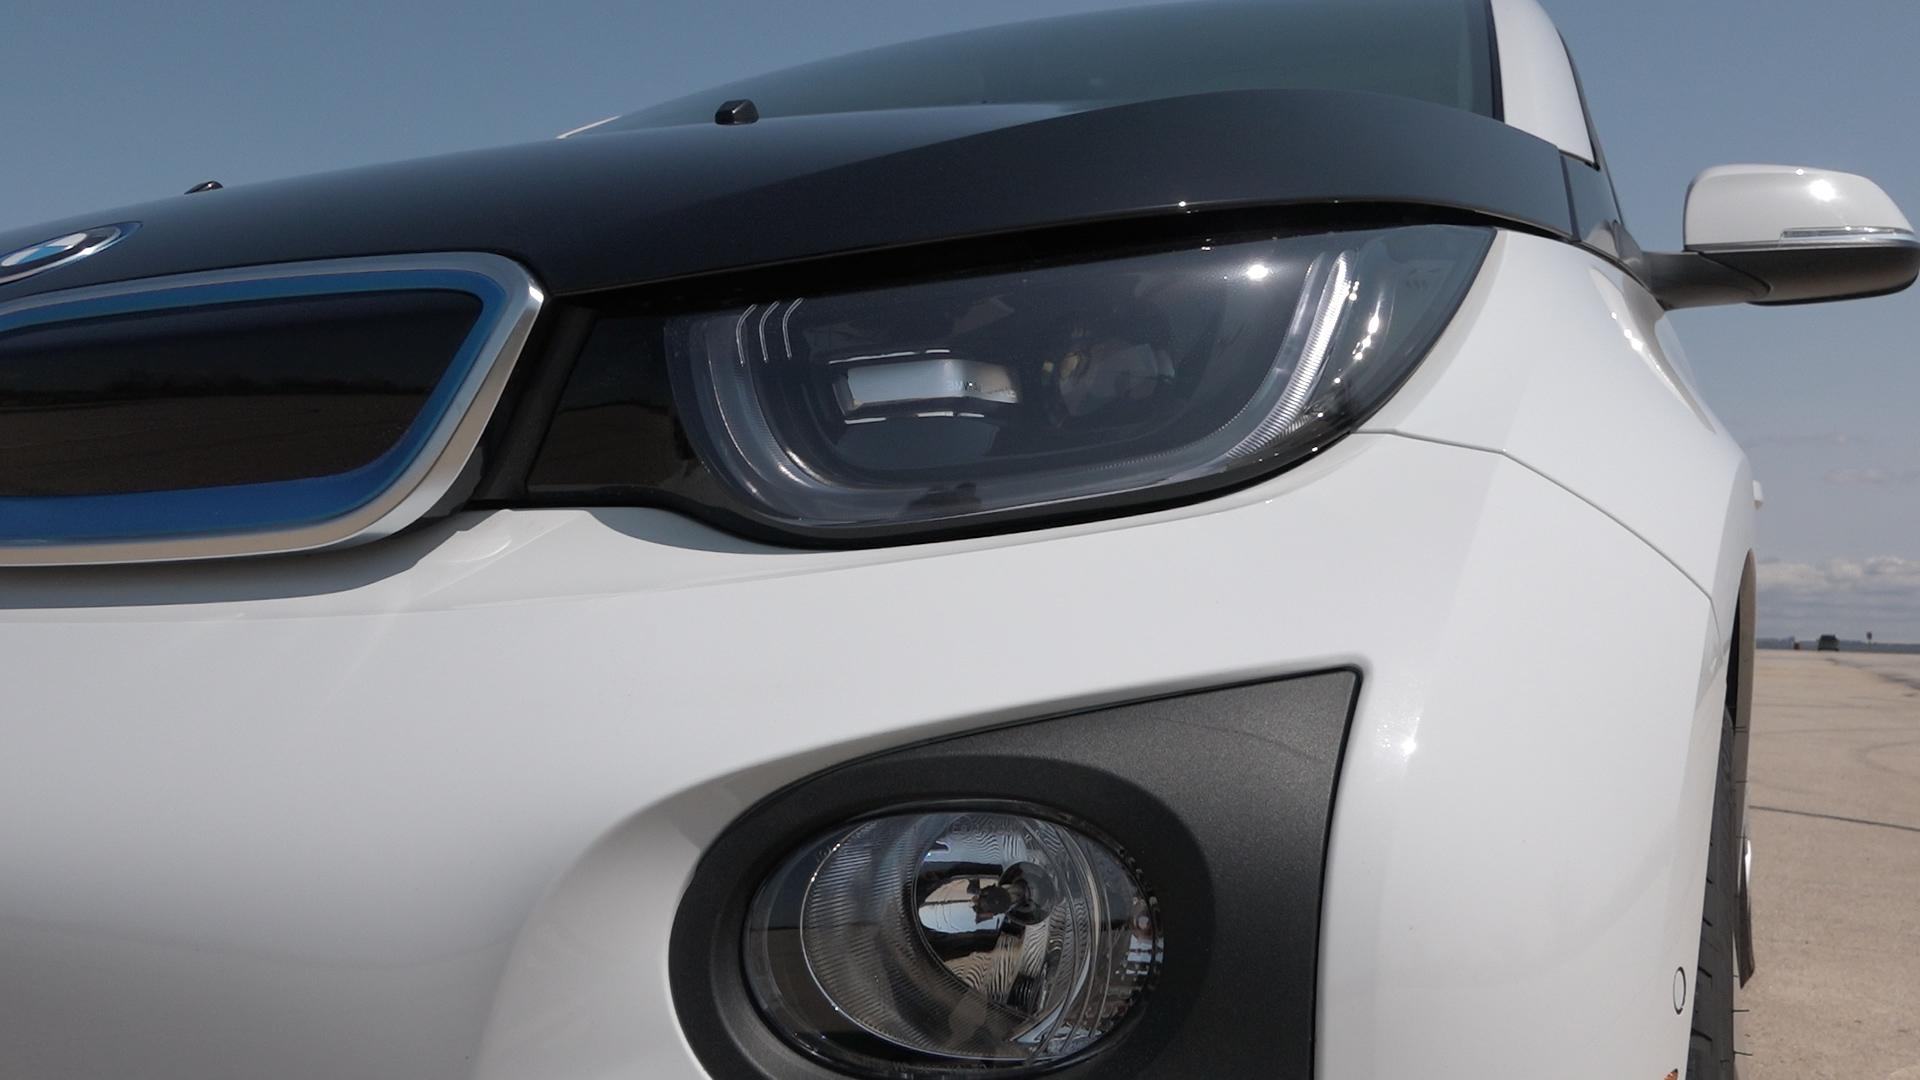 BMW i3 closeup